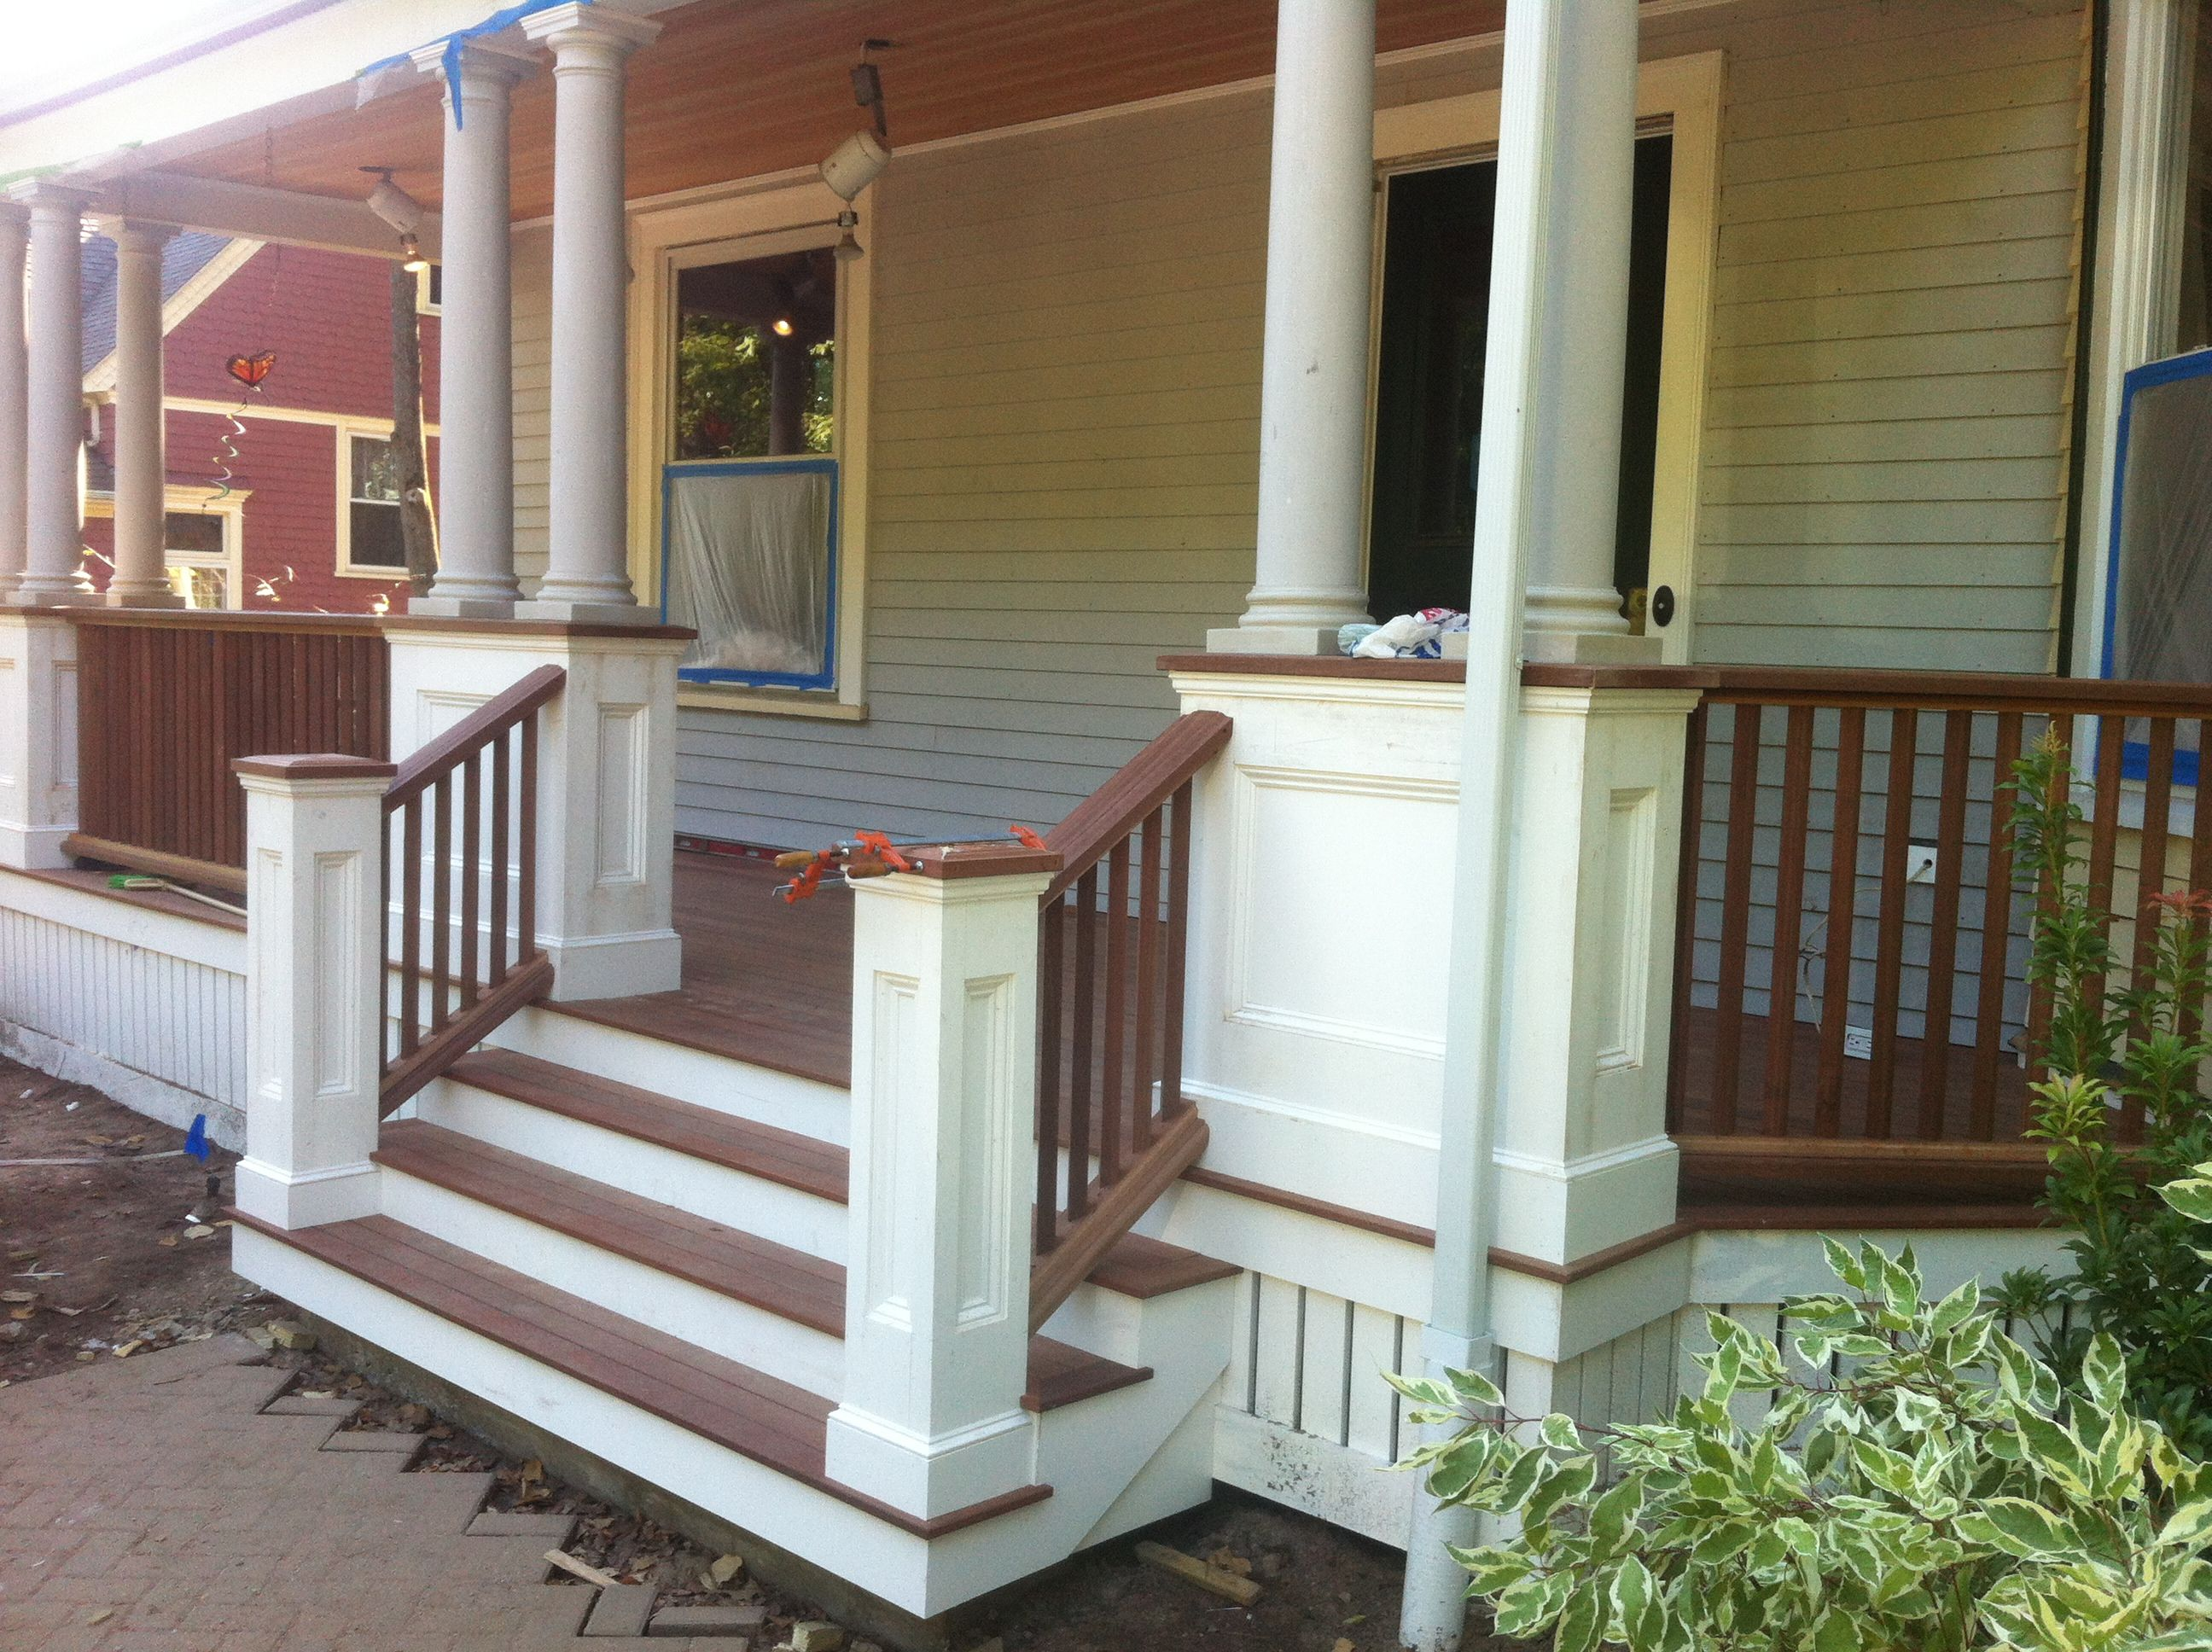 Best Front Porch Stairs For The House This Could Be Done 400 x 300